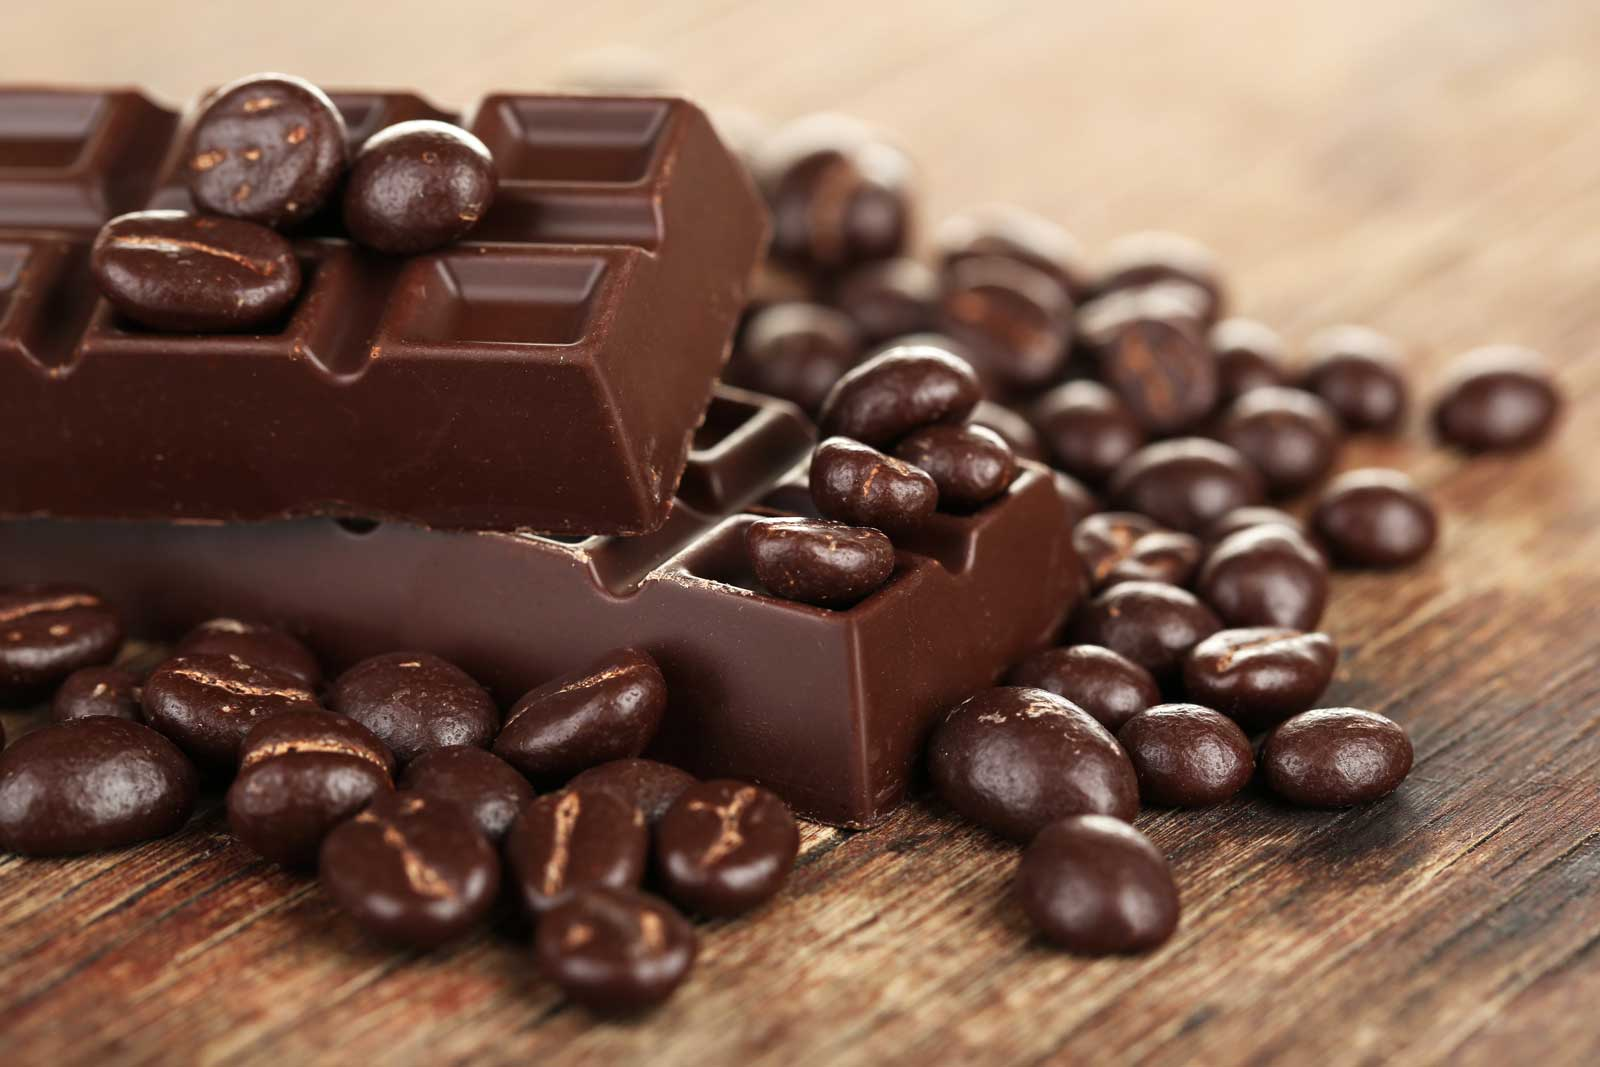 Eating More of Dark Chocolate Keeps Ones Heart Healthier than Who Doesn't: Says Study